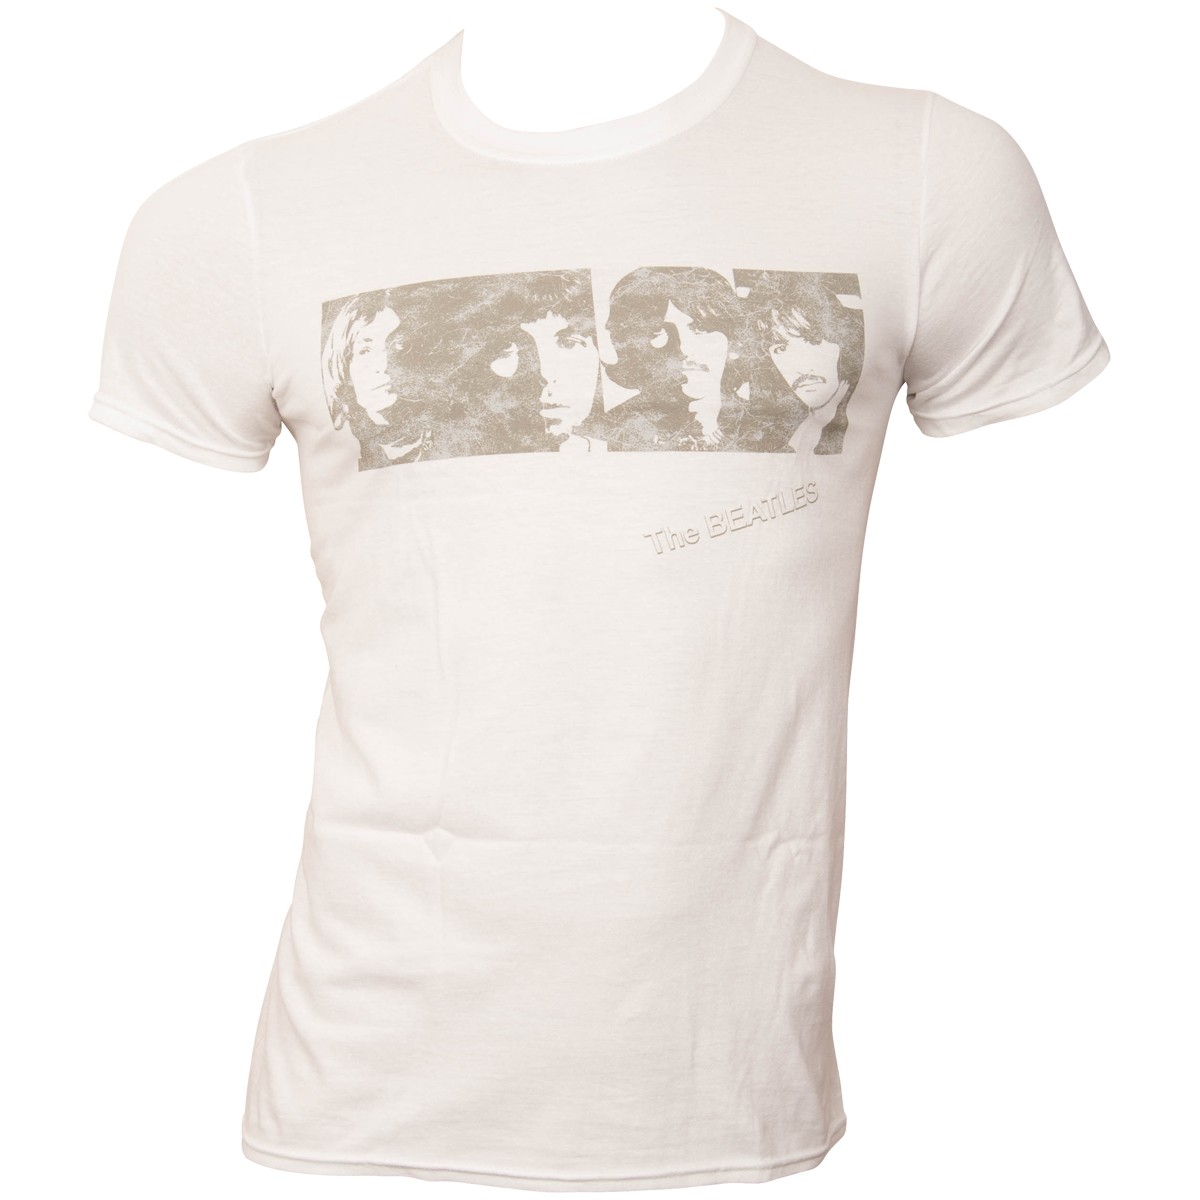 The Beatles - T-Shirt White Album Faces - weiß